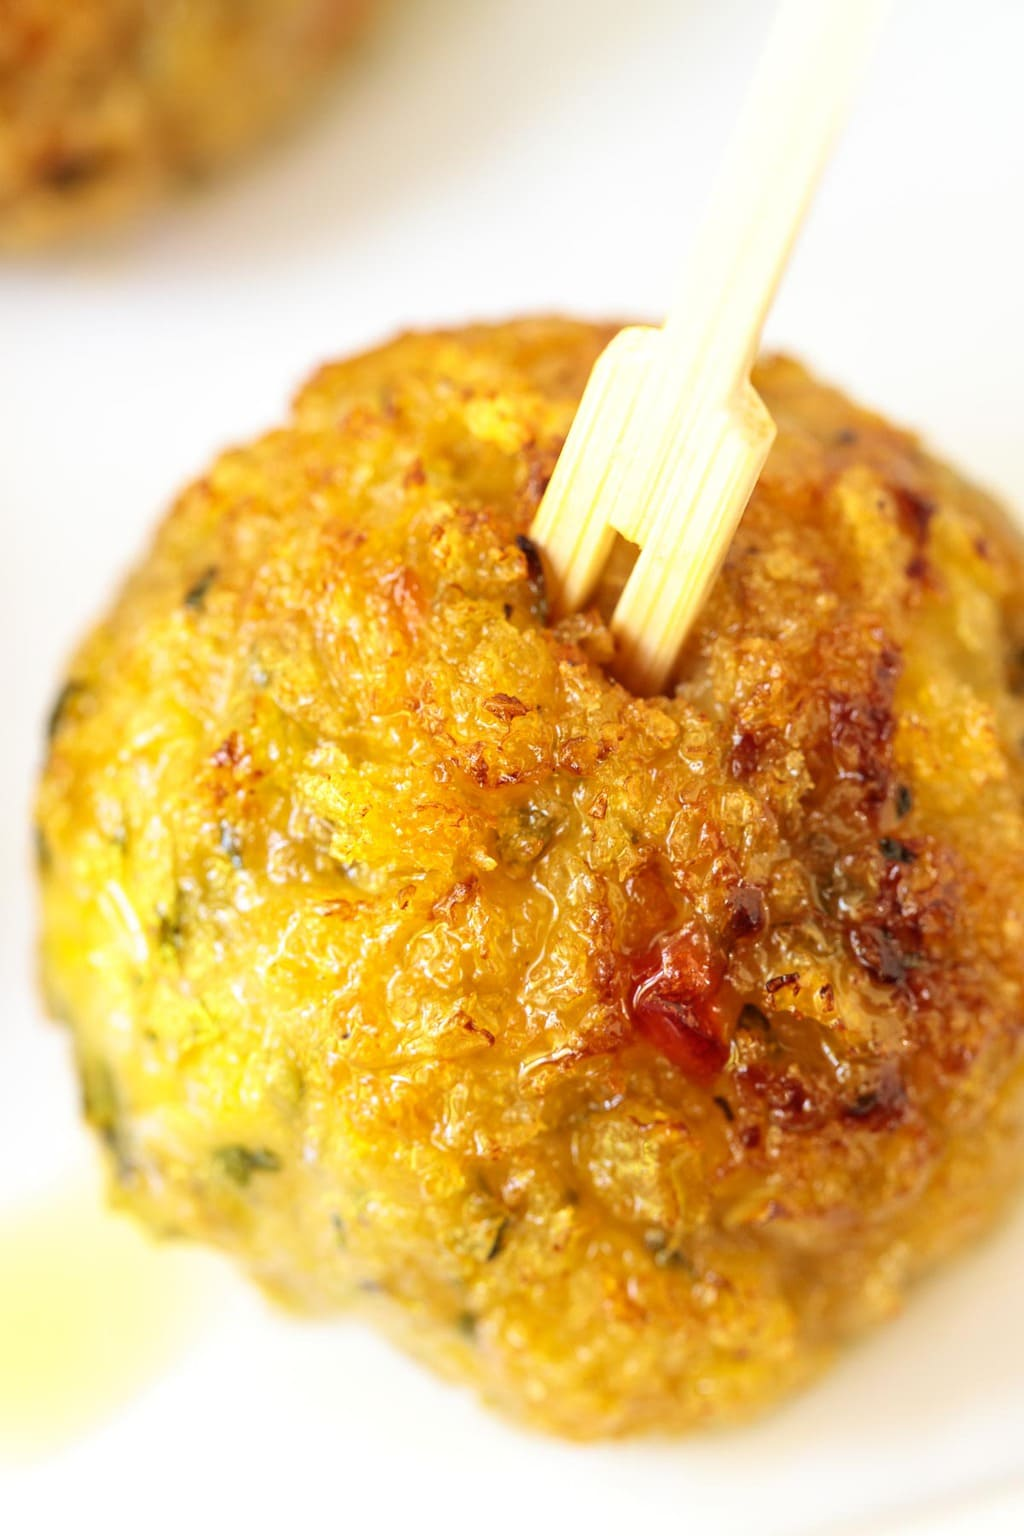 Ultra closeup of a Vietnamese Chicken Meatball.